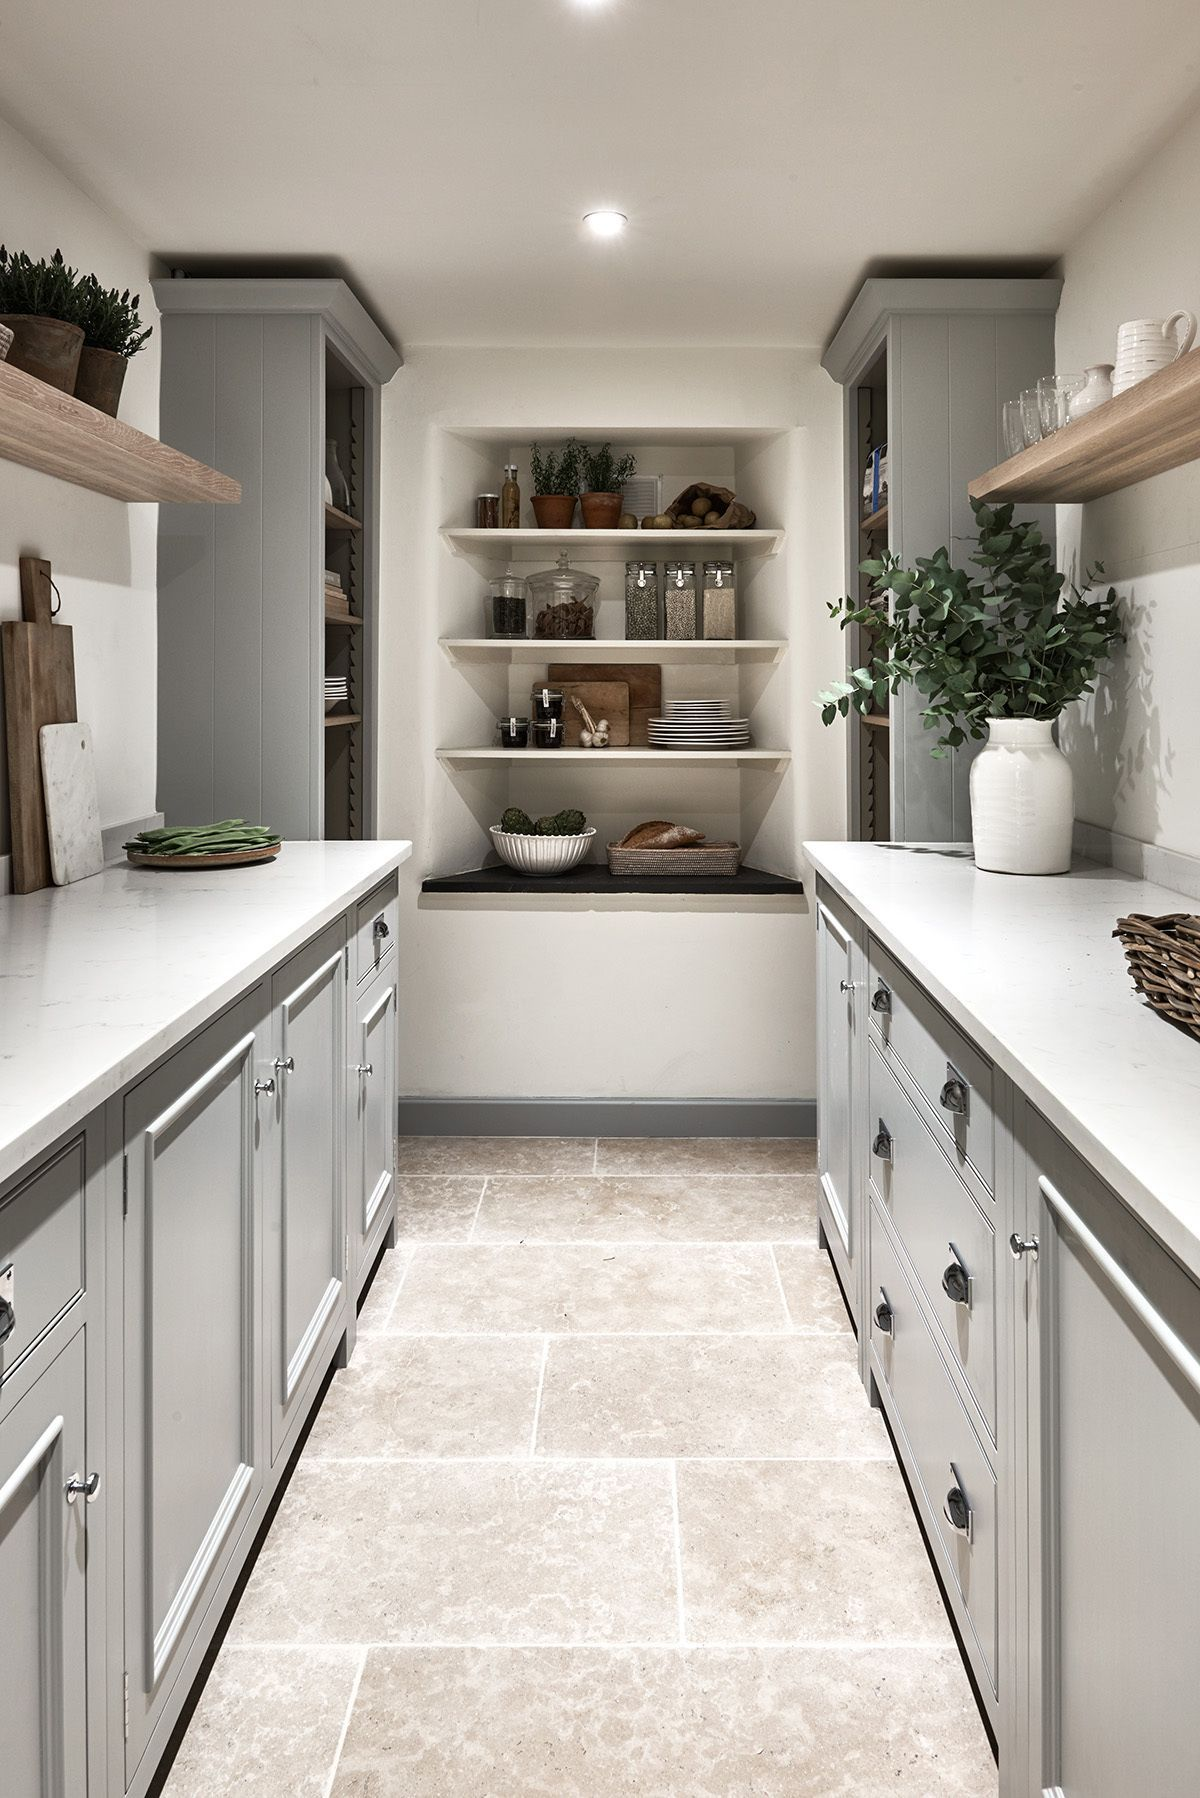 10x10 Laundry Room Layout: Great Look For Butler's Pantry Or A Fab Laundry Room! Top